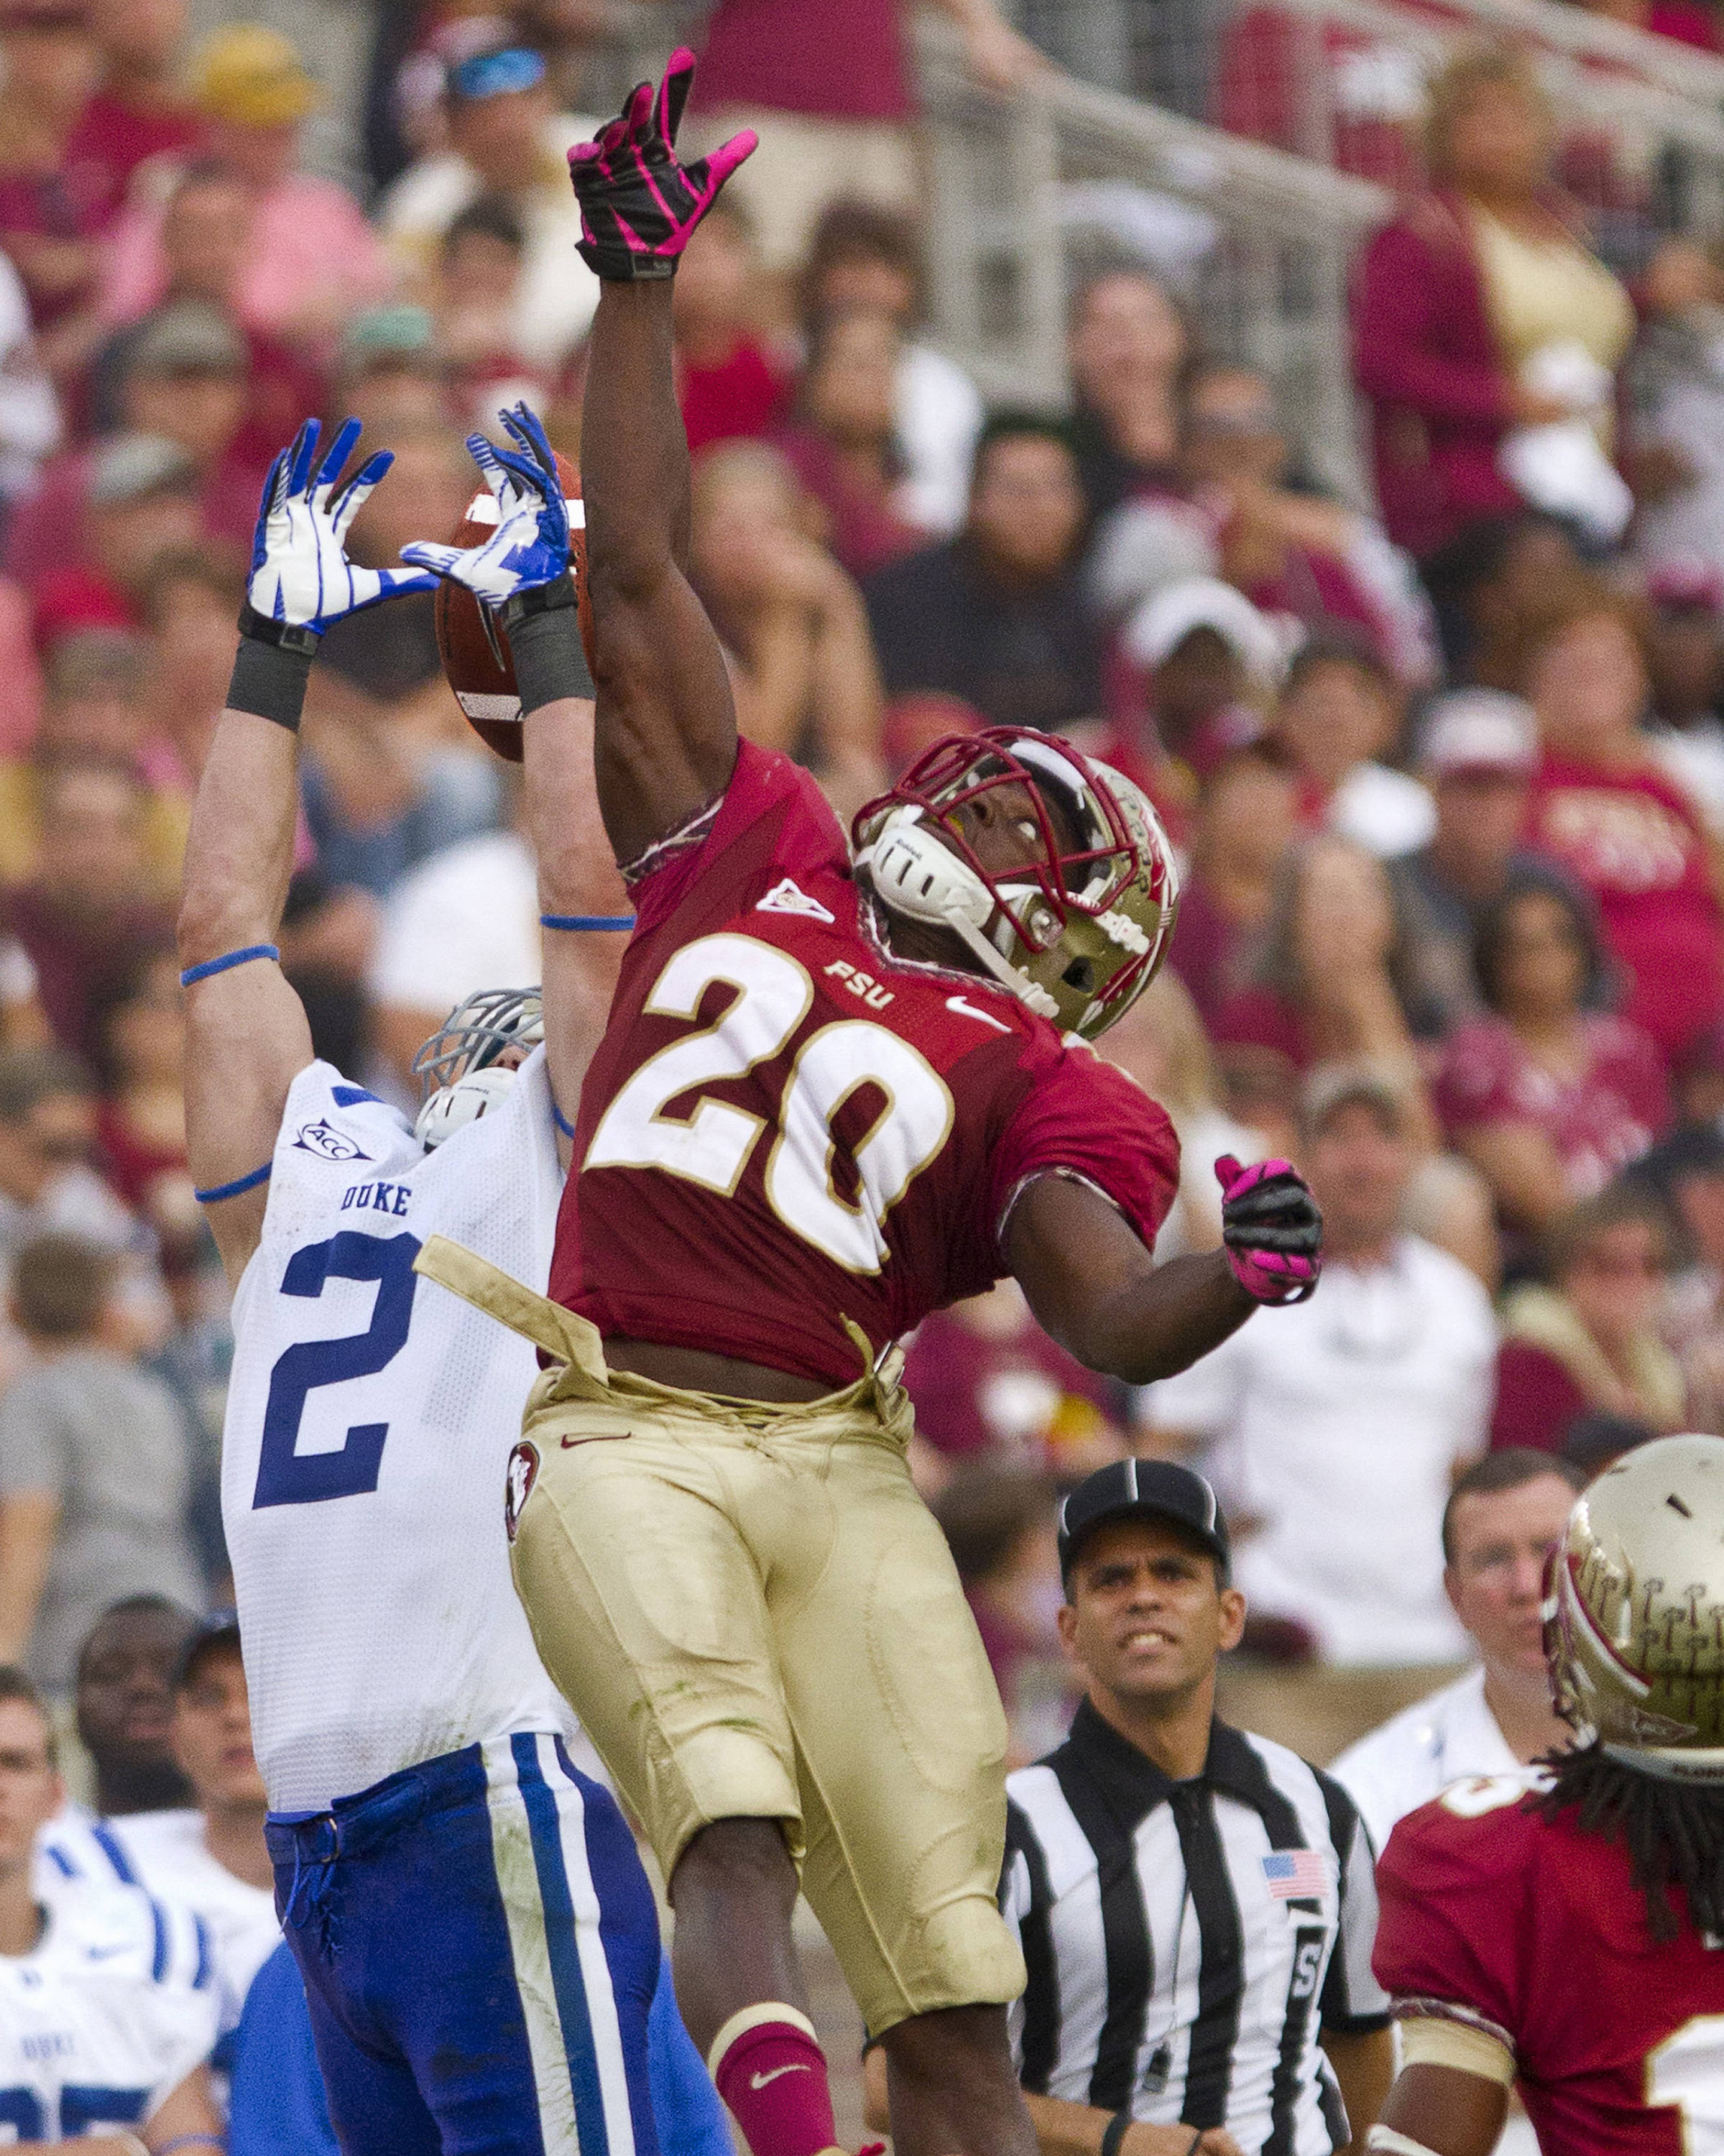 Lamarcus Joyner (20) blocks a reception during FSU's 48-7 victory over Duke on October 27, 2012 in Tallahassee, Fla.